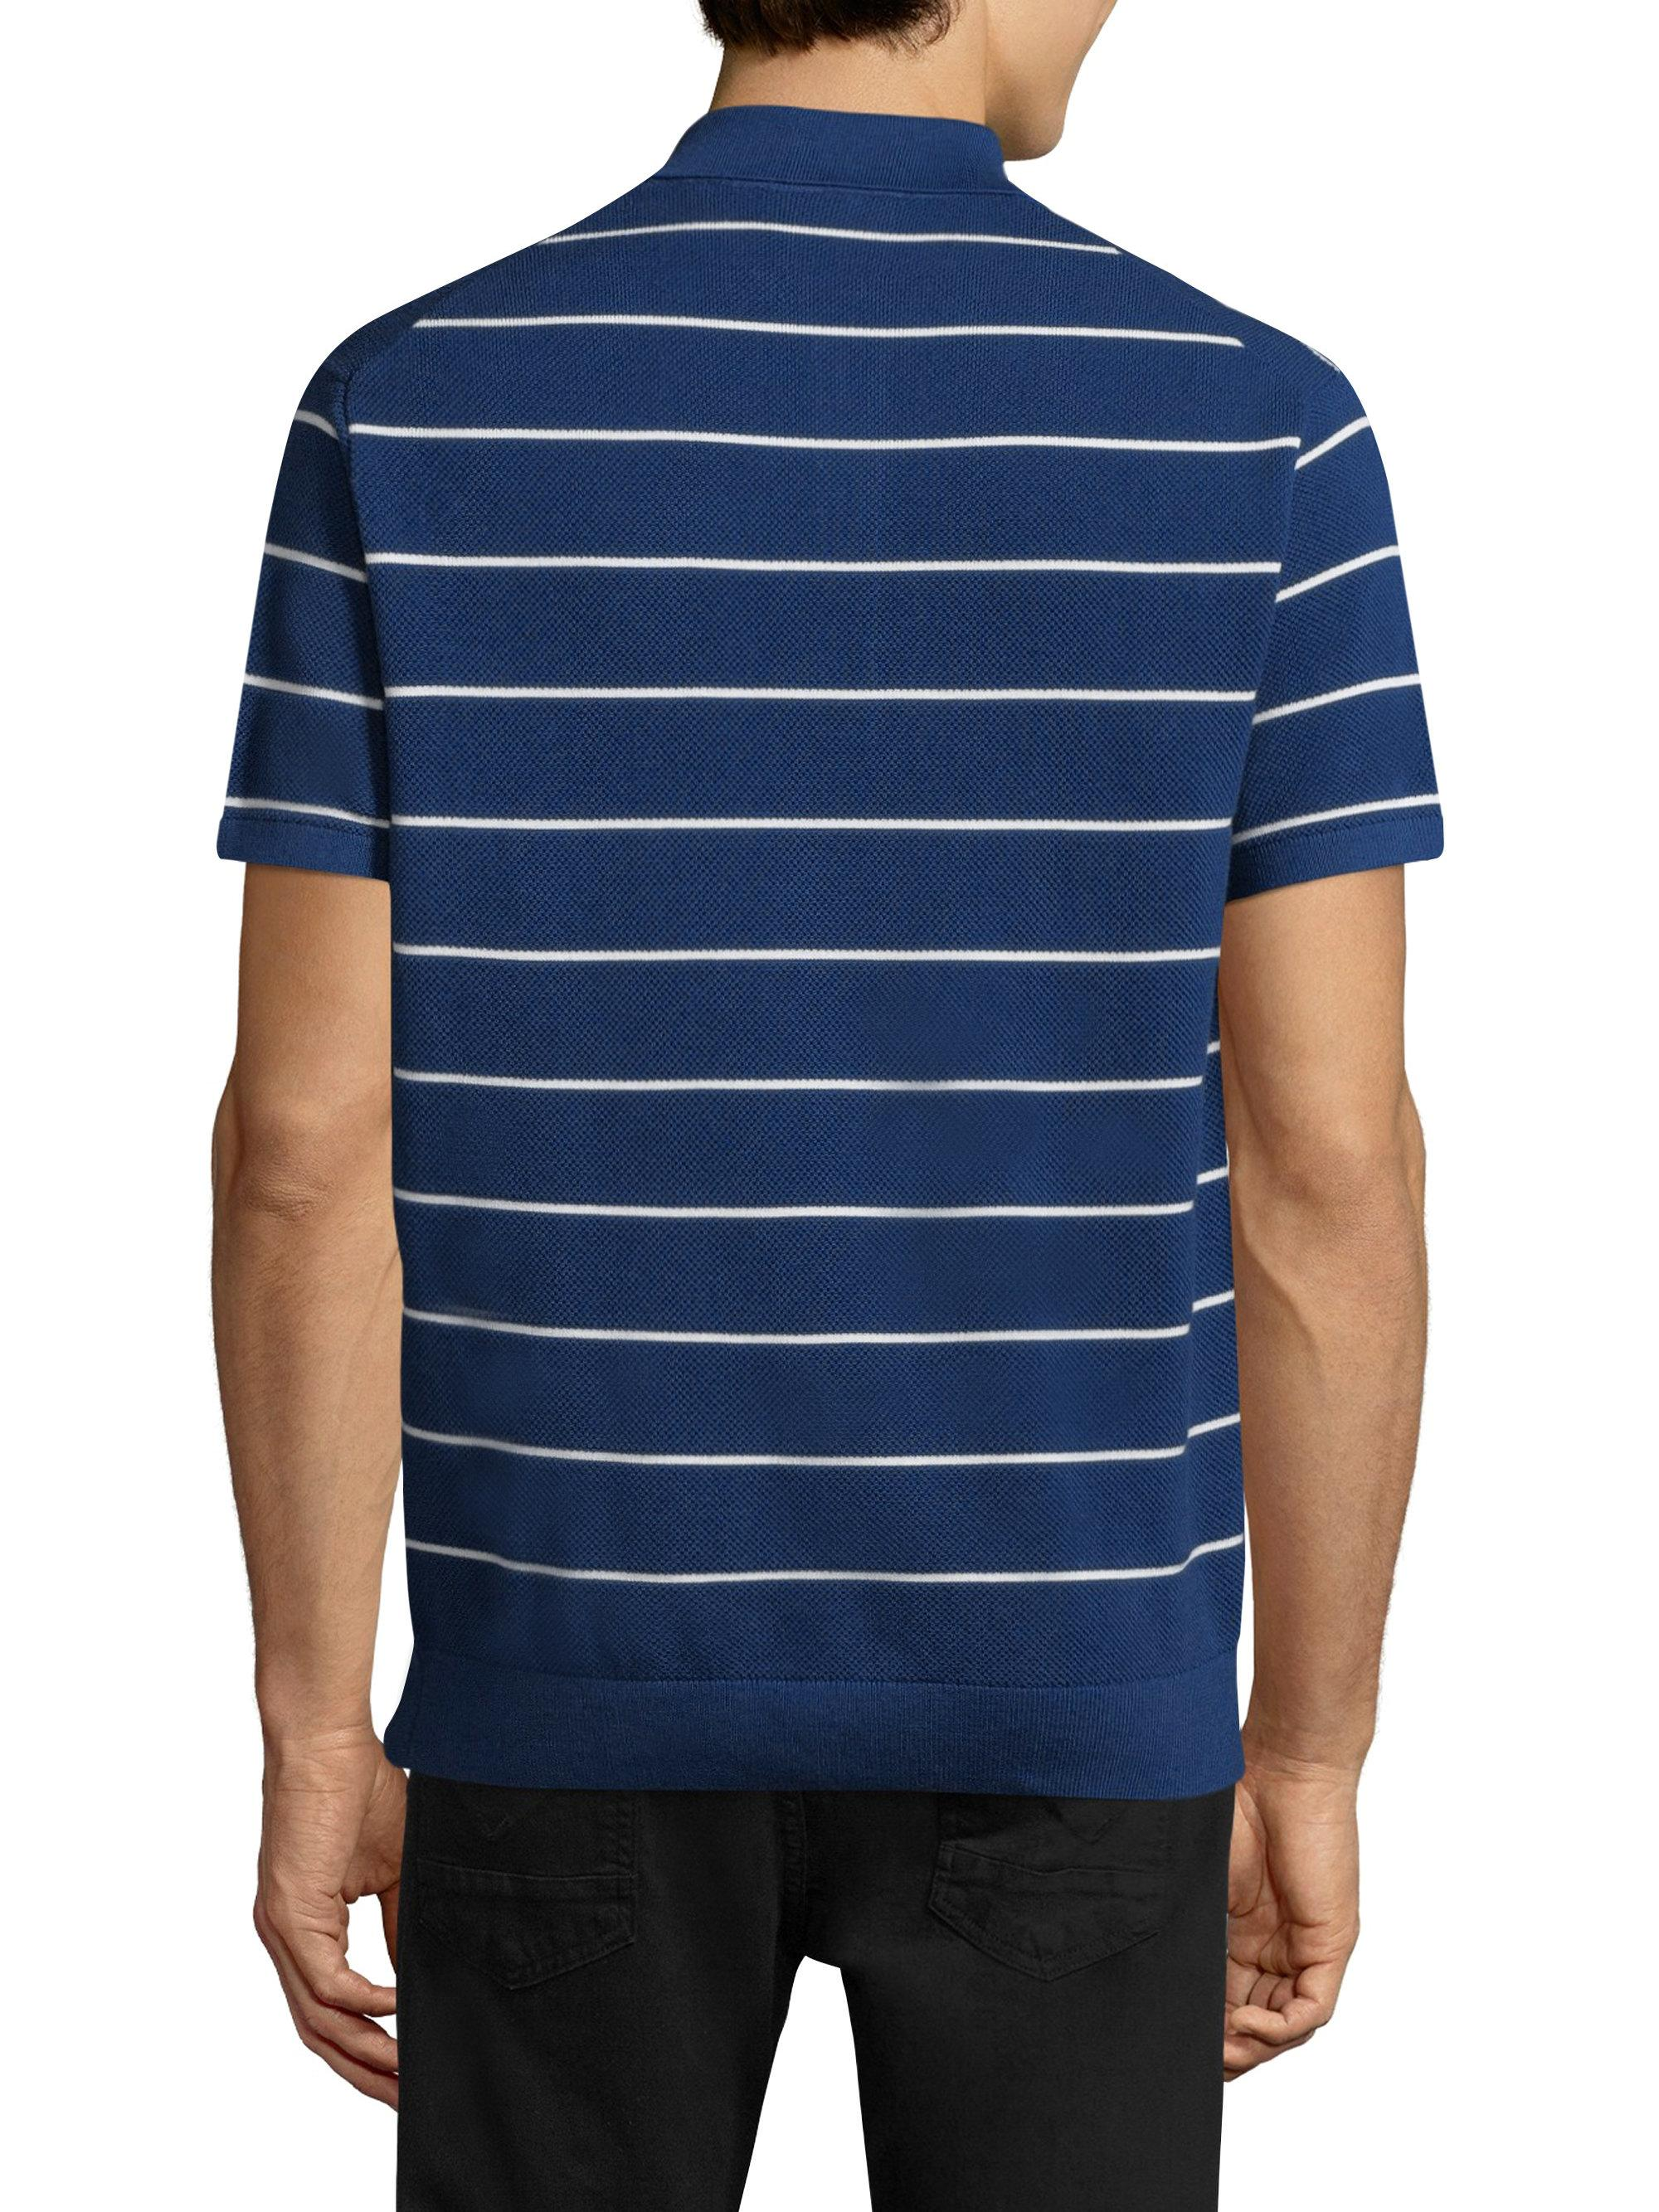 Lacoste Mens Short Sleeve Heritage France Strip Pique//Jersey Sweater AH4542